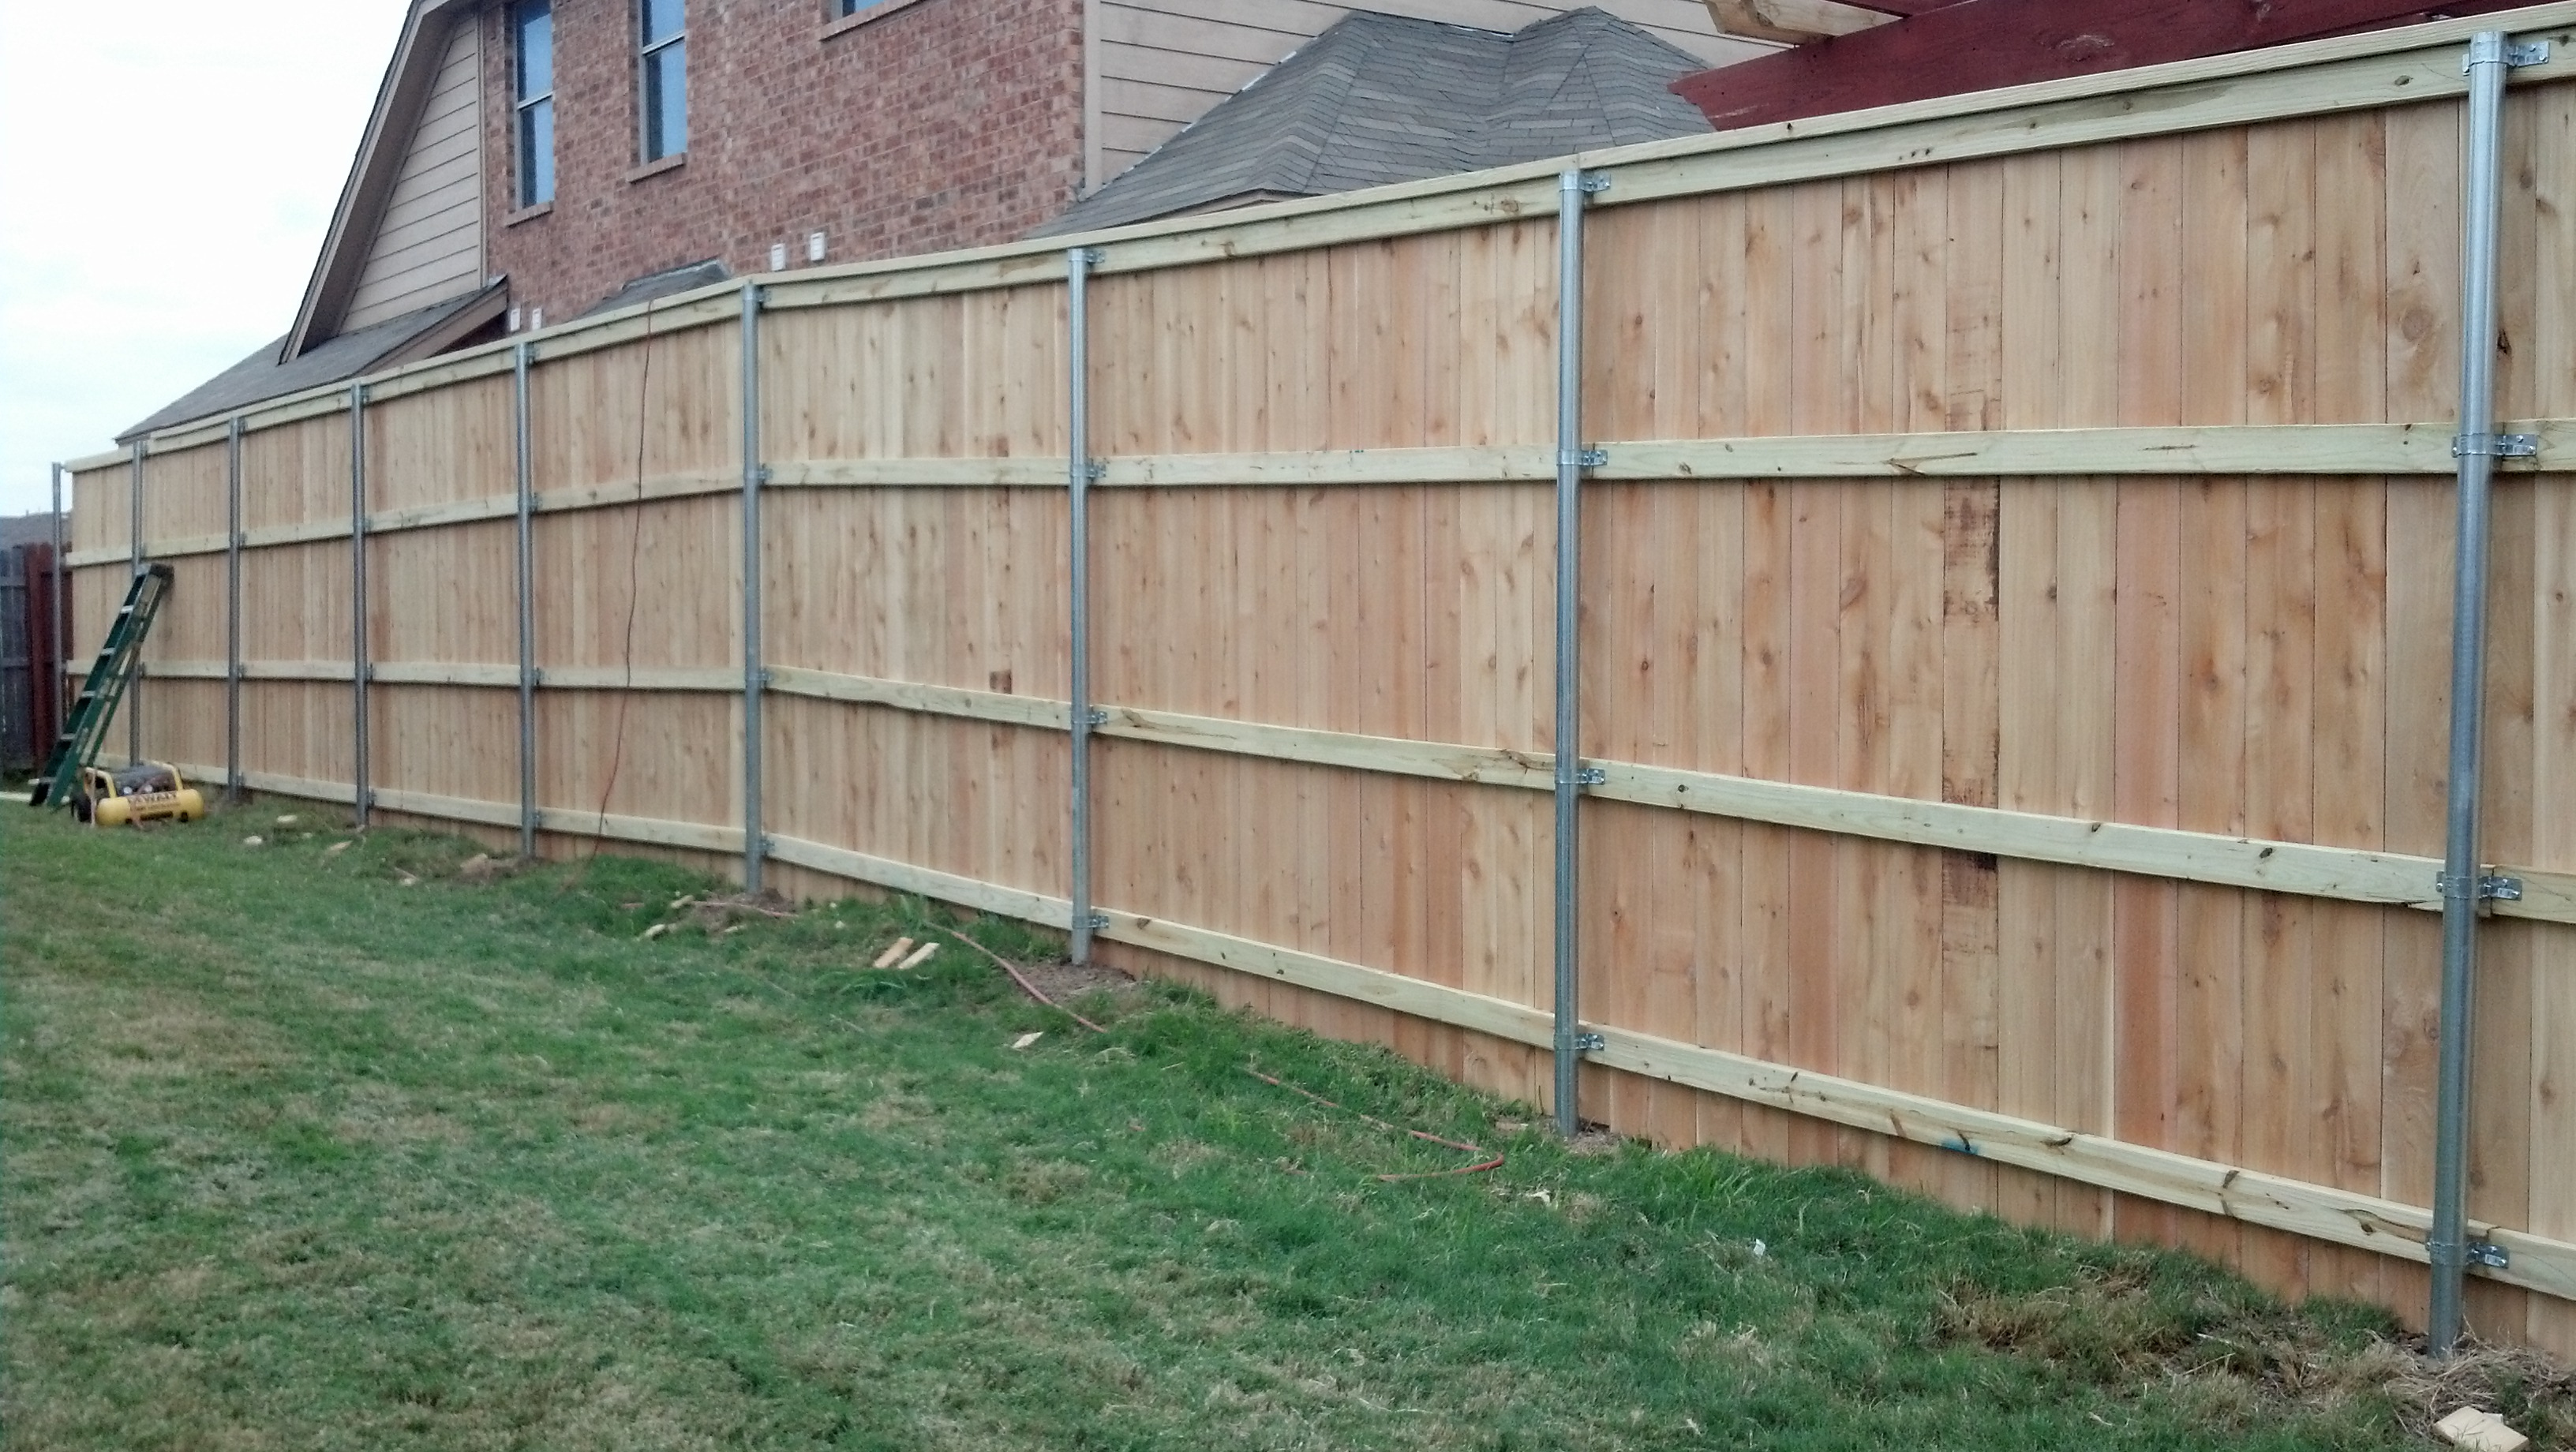 8 Foot Tall Fence Pickets Best Fence 2018 In Dimensions